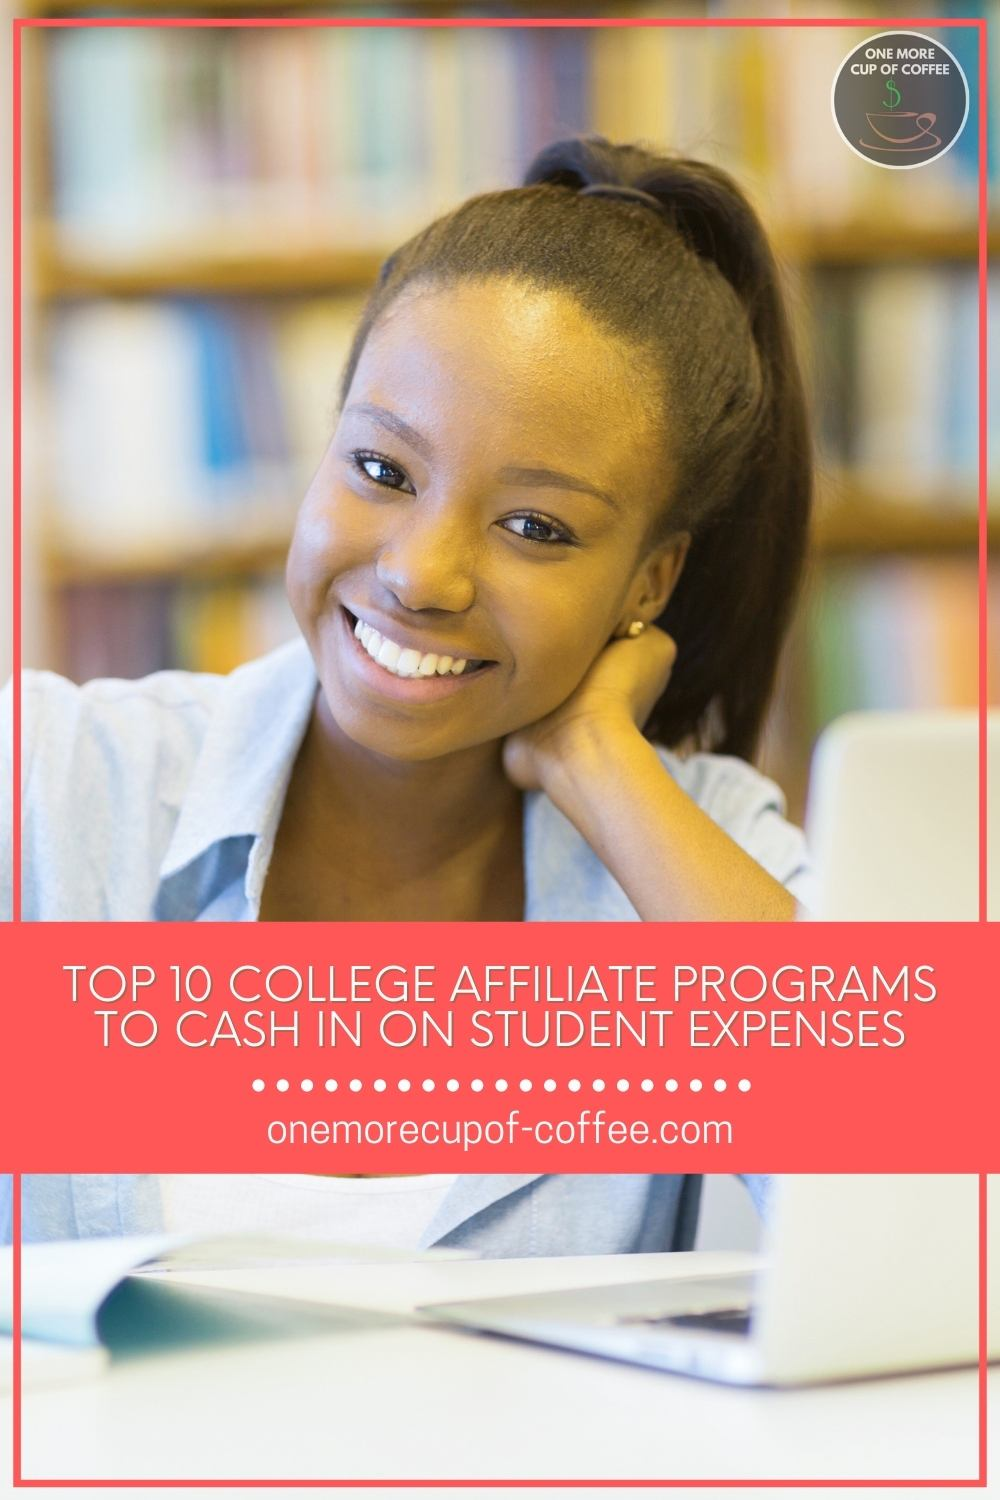 """a smiling female college student on her laptop, with text overlay """"Top 10 College Affiliate Programs To Cash In On Student Expenses"""""""